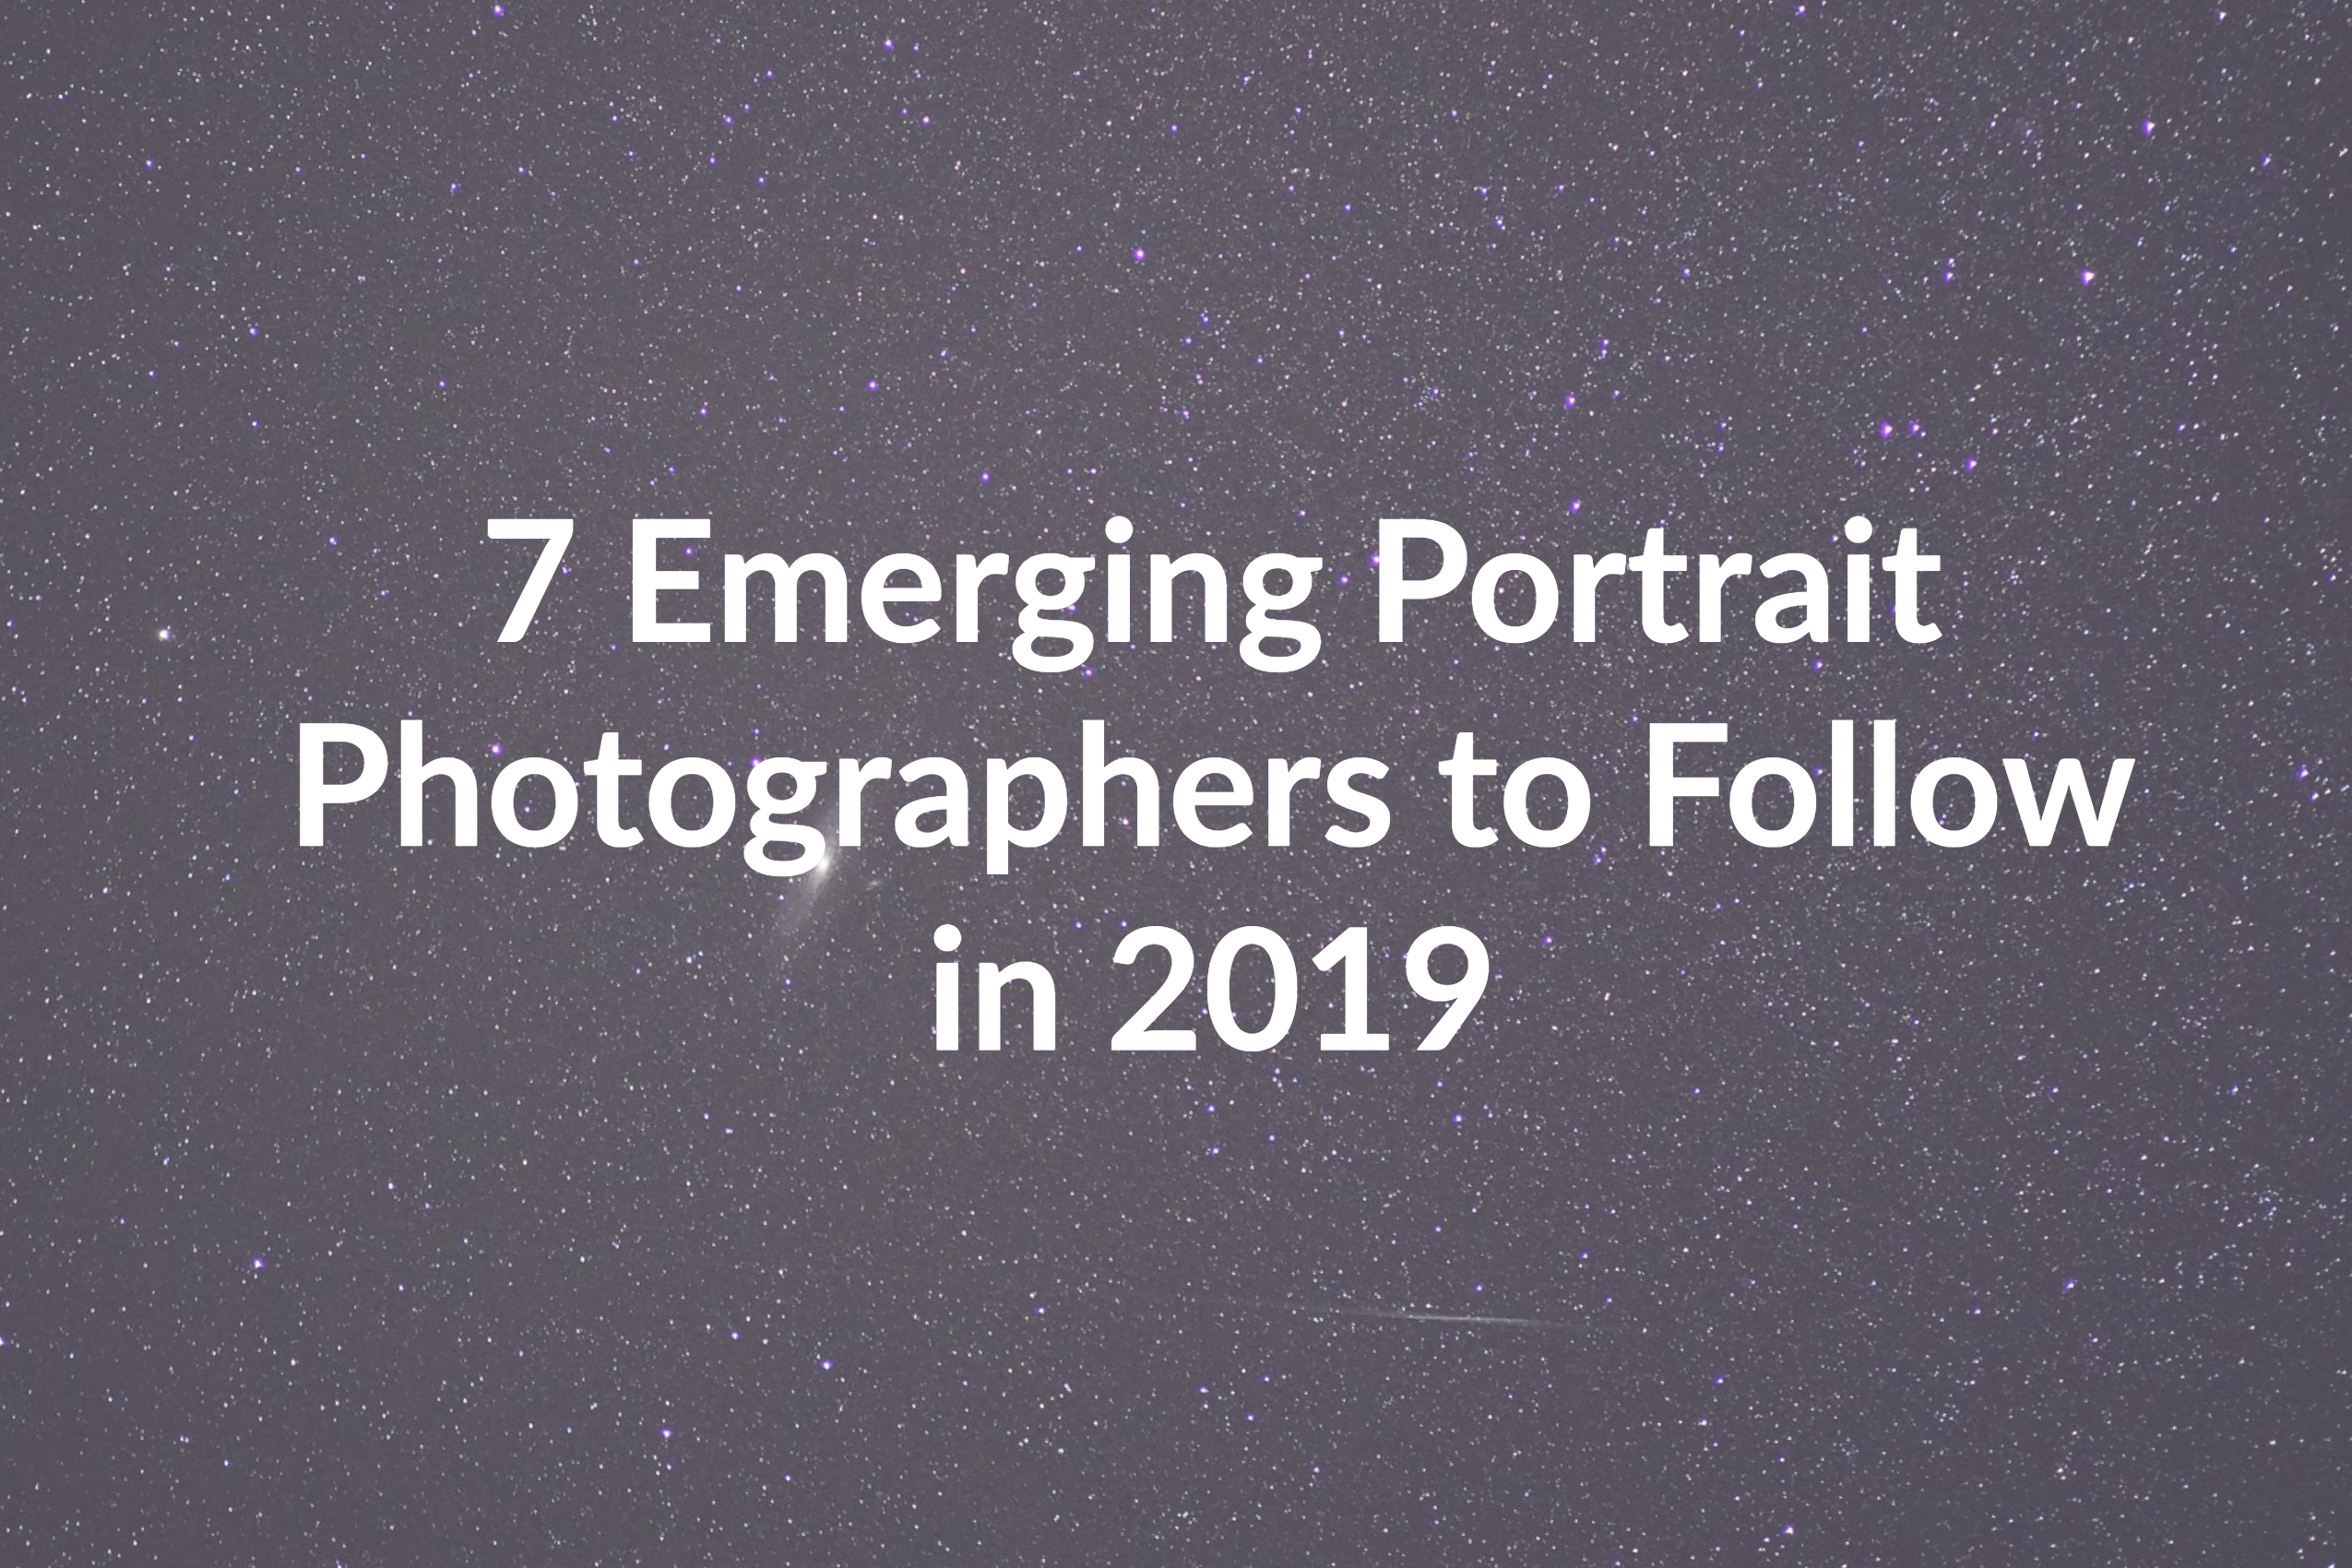 7 Emerging Portrait Photographers to Follow in 2019